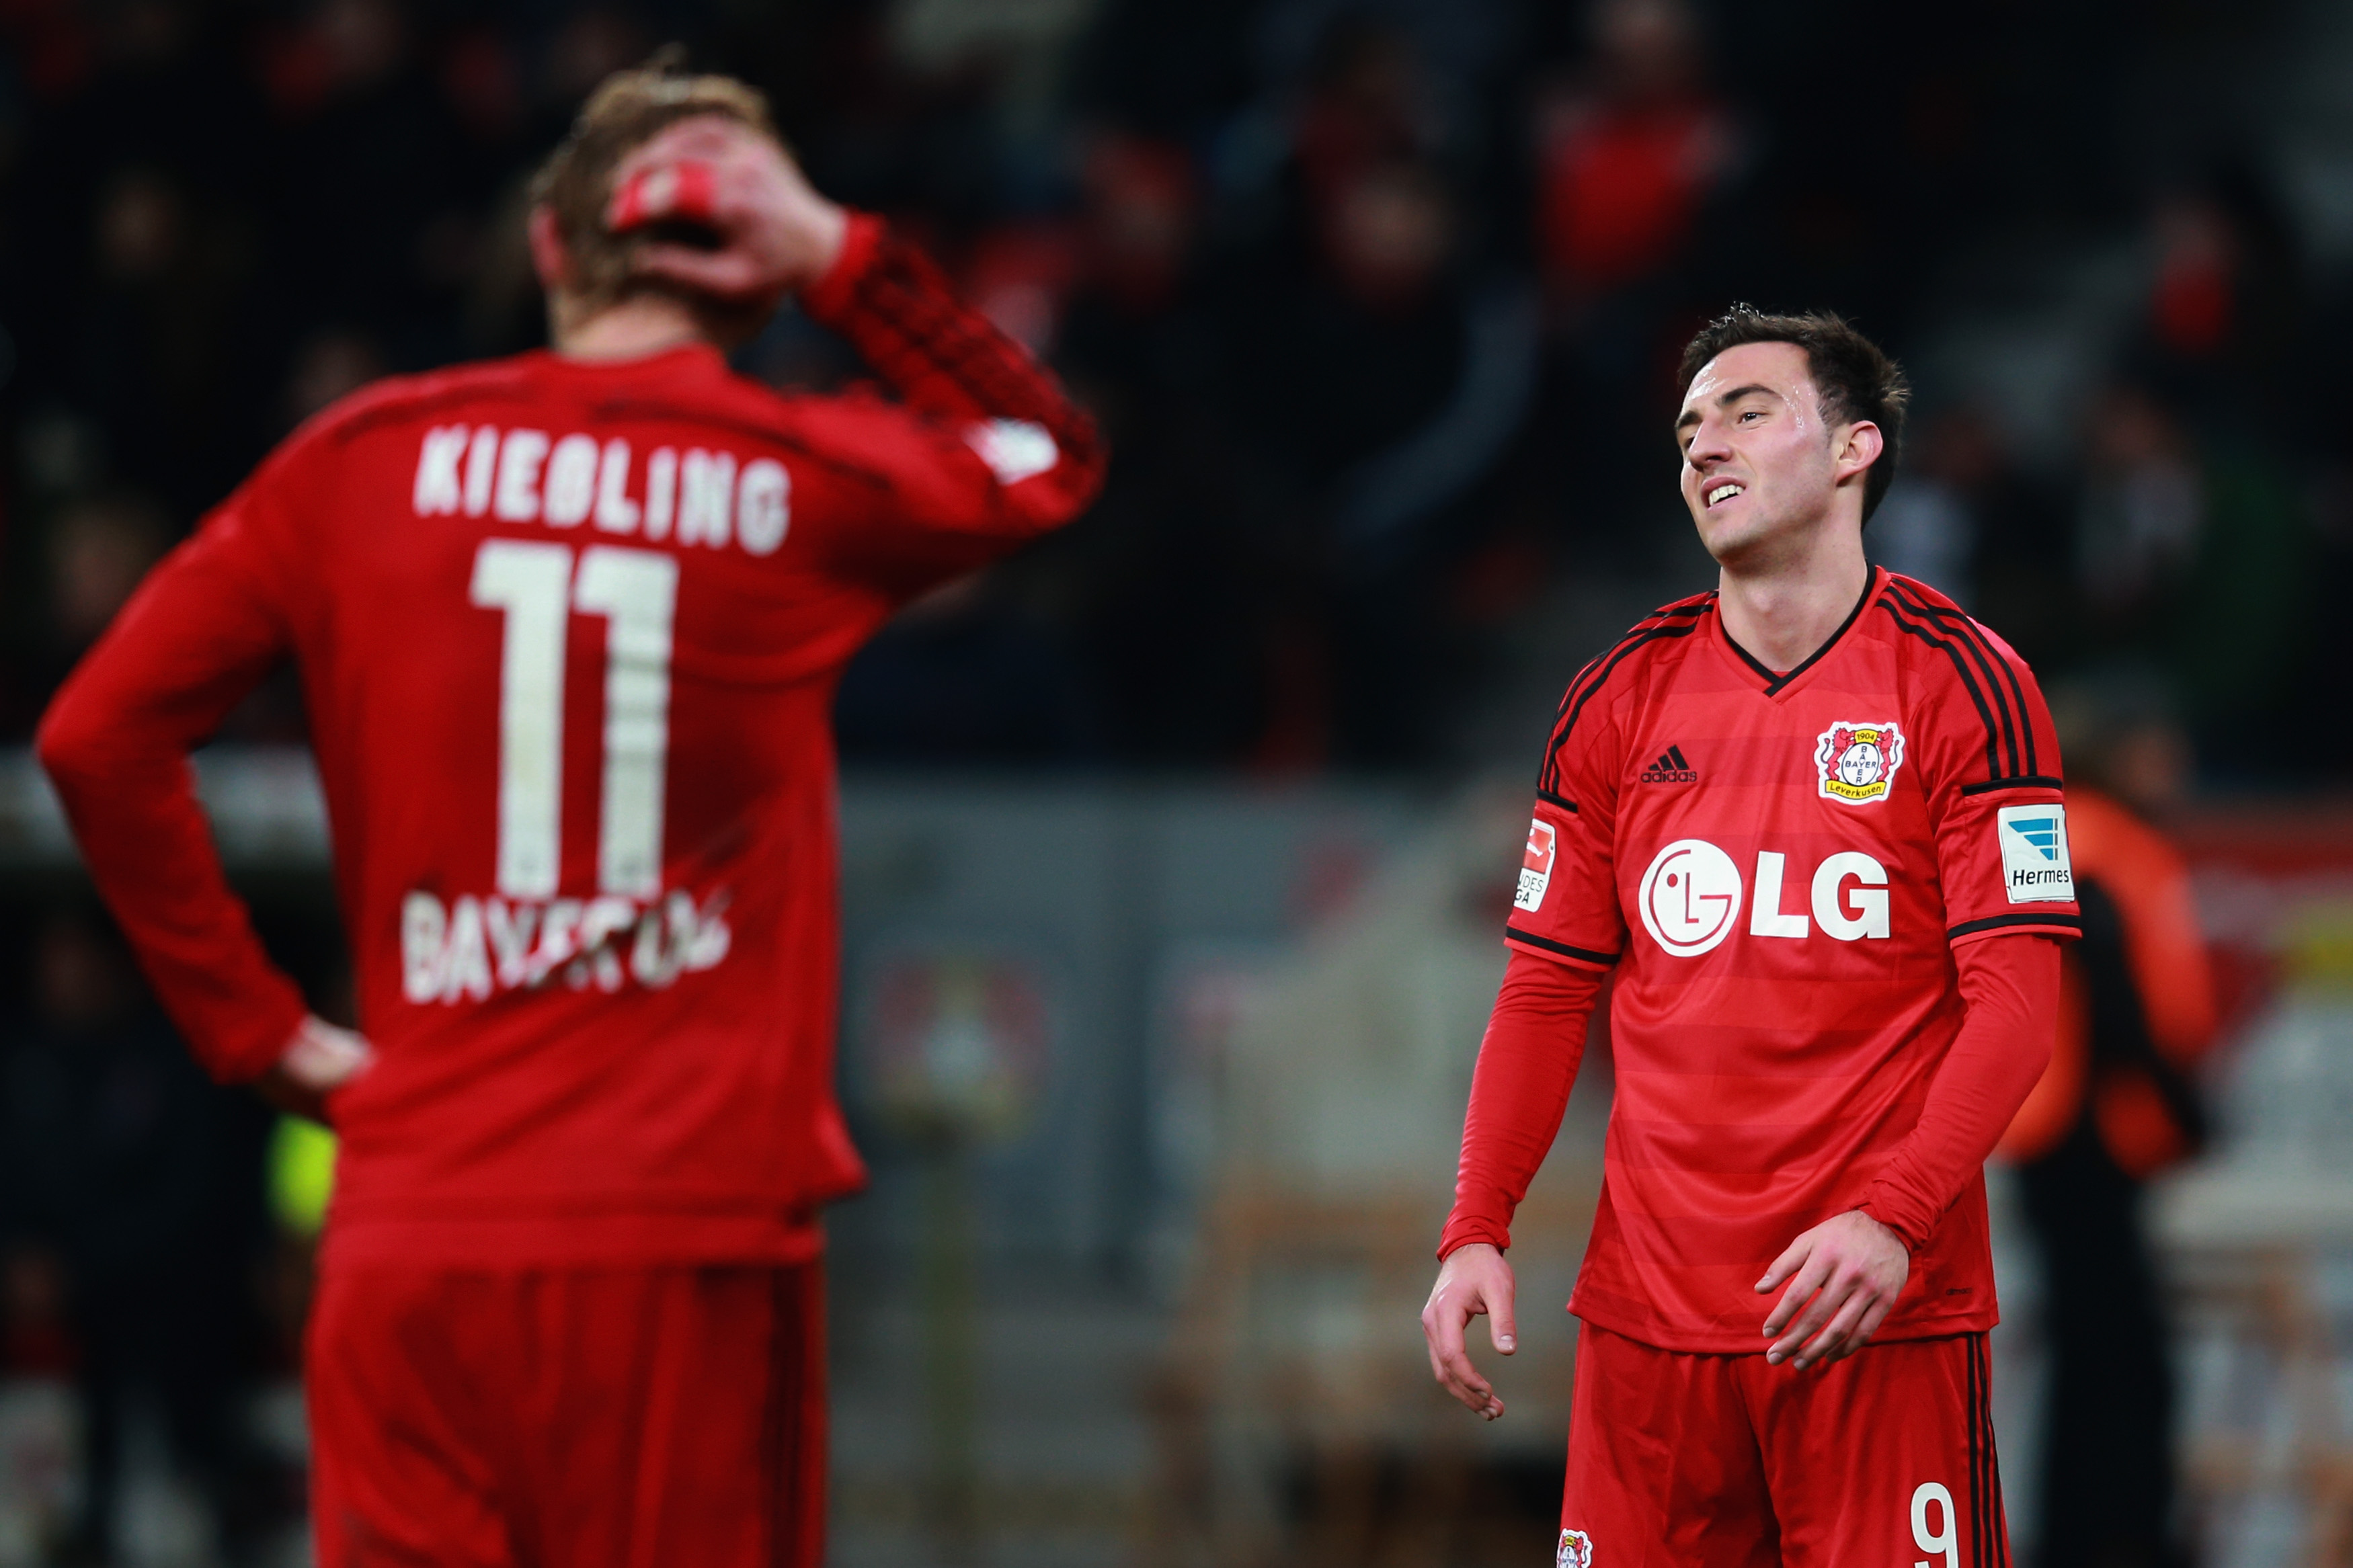 Leverkusen need more from their strikers to stay in Champions League hunt